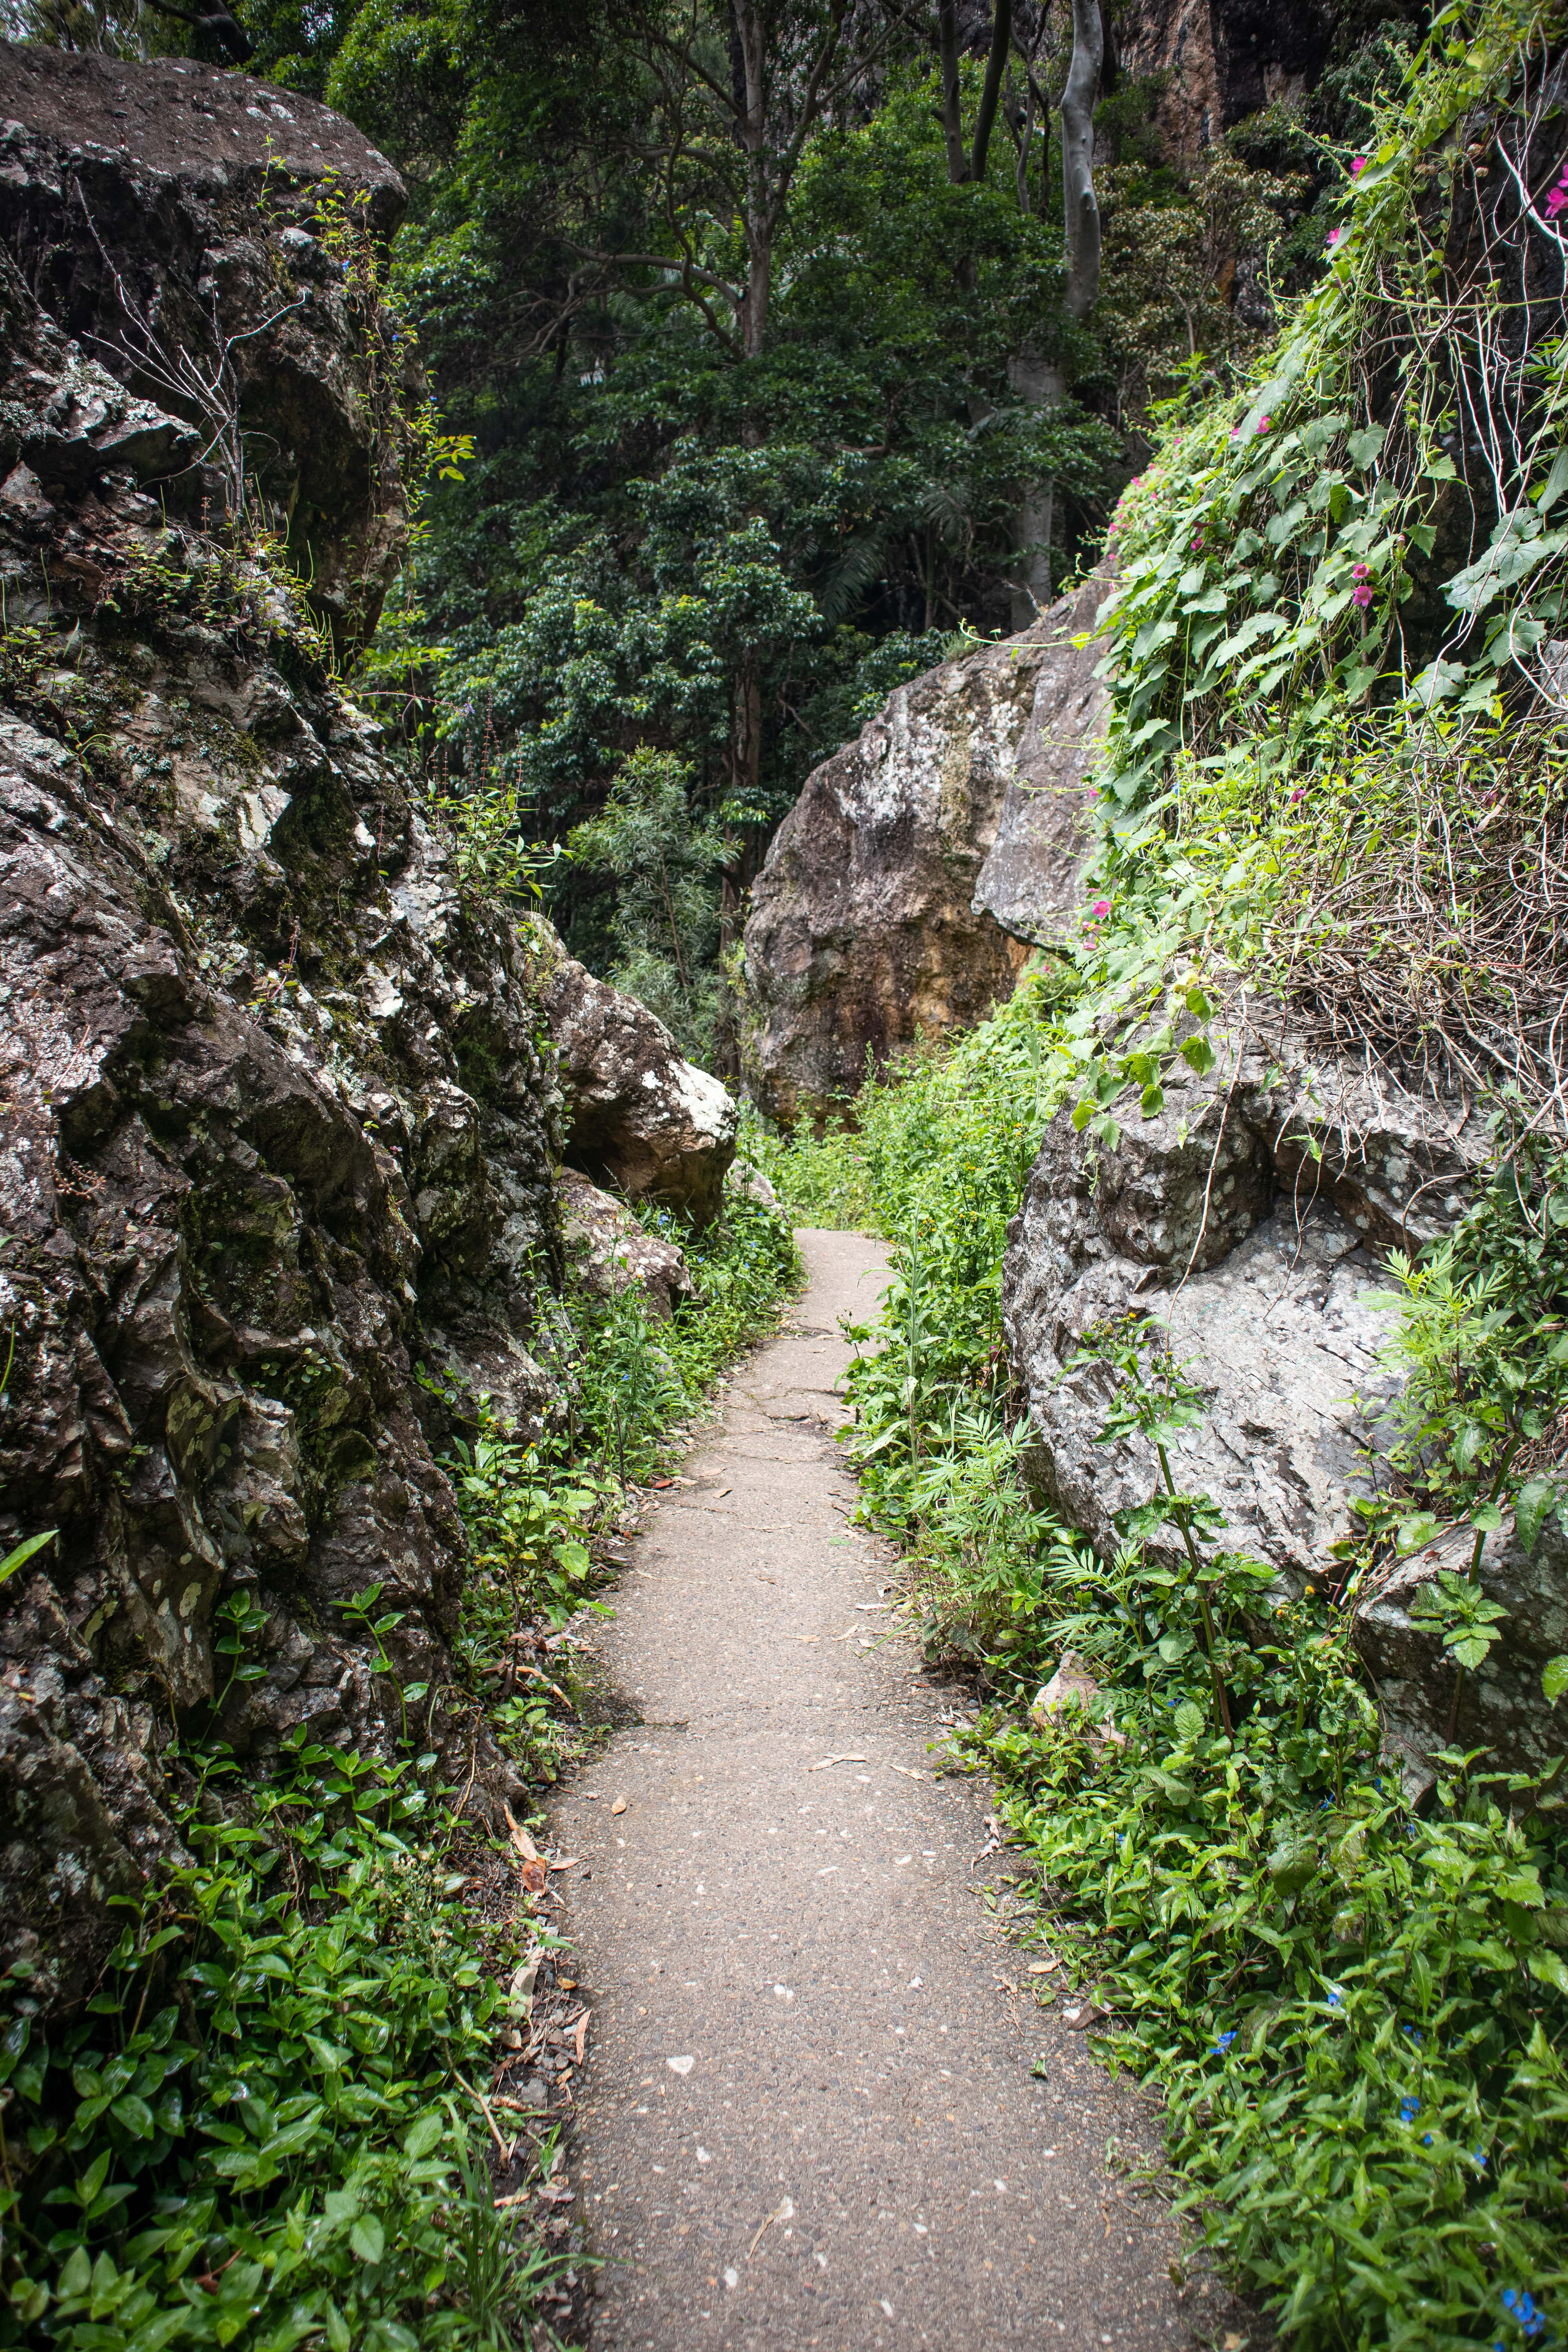 Winding concrete hiking path through rock formations in the rainforest